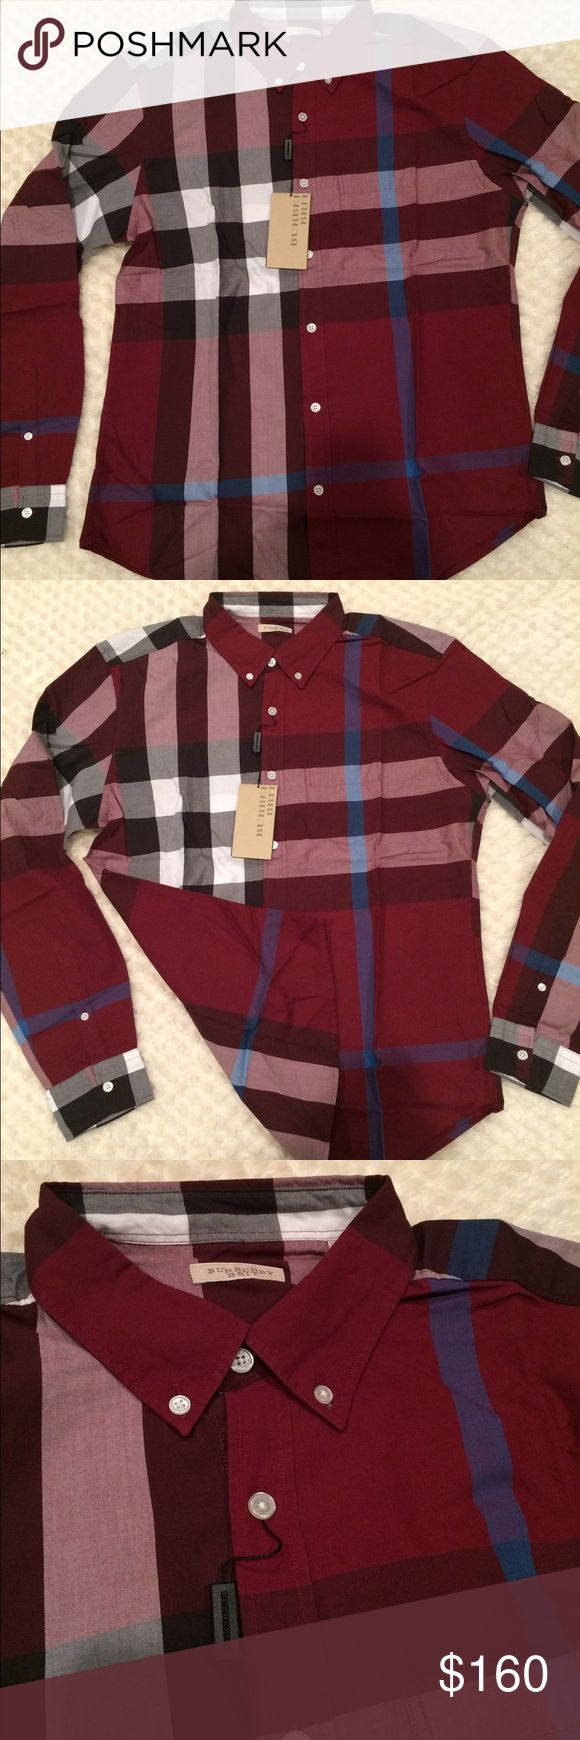 New burberry shirt for men New with tags burberry shirt for men velvet color 100% cotton Burberry Shirts Casual Button Down Shirts